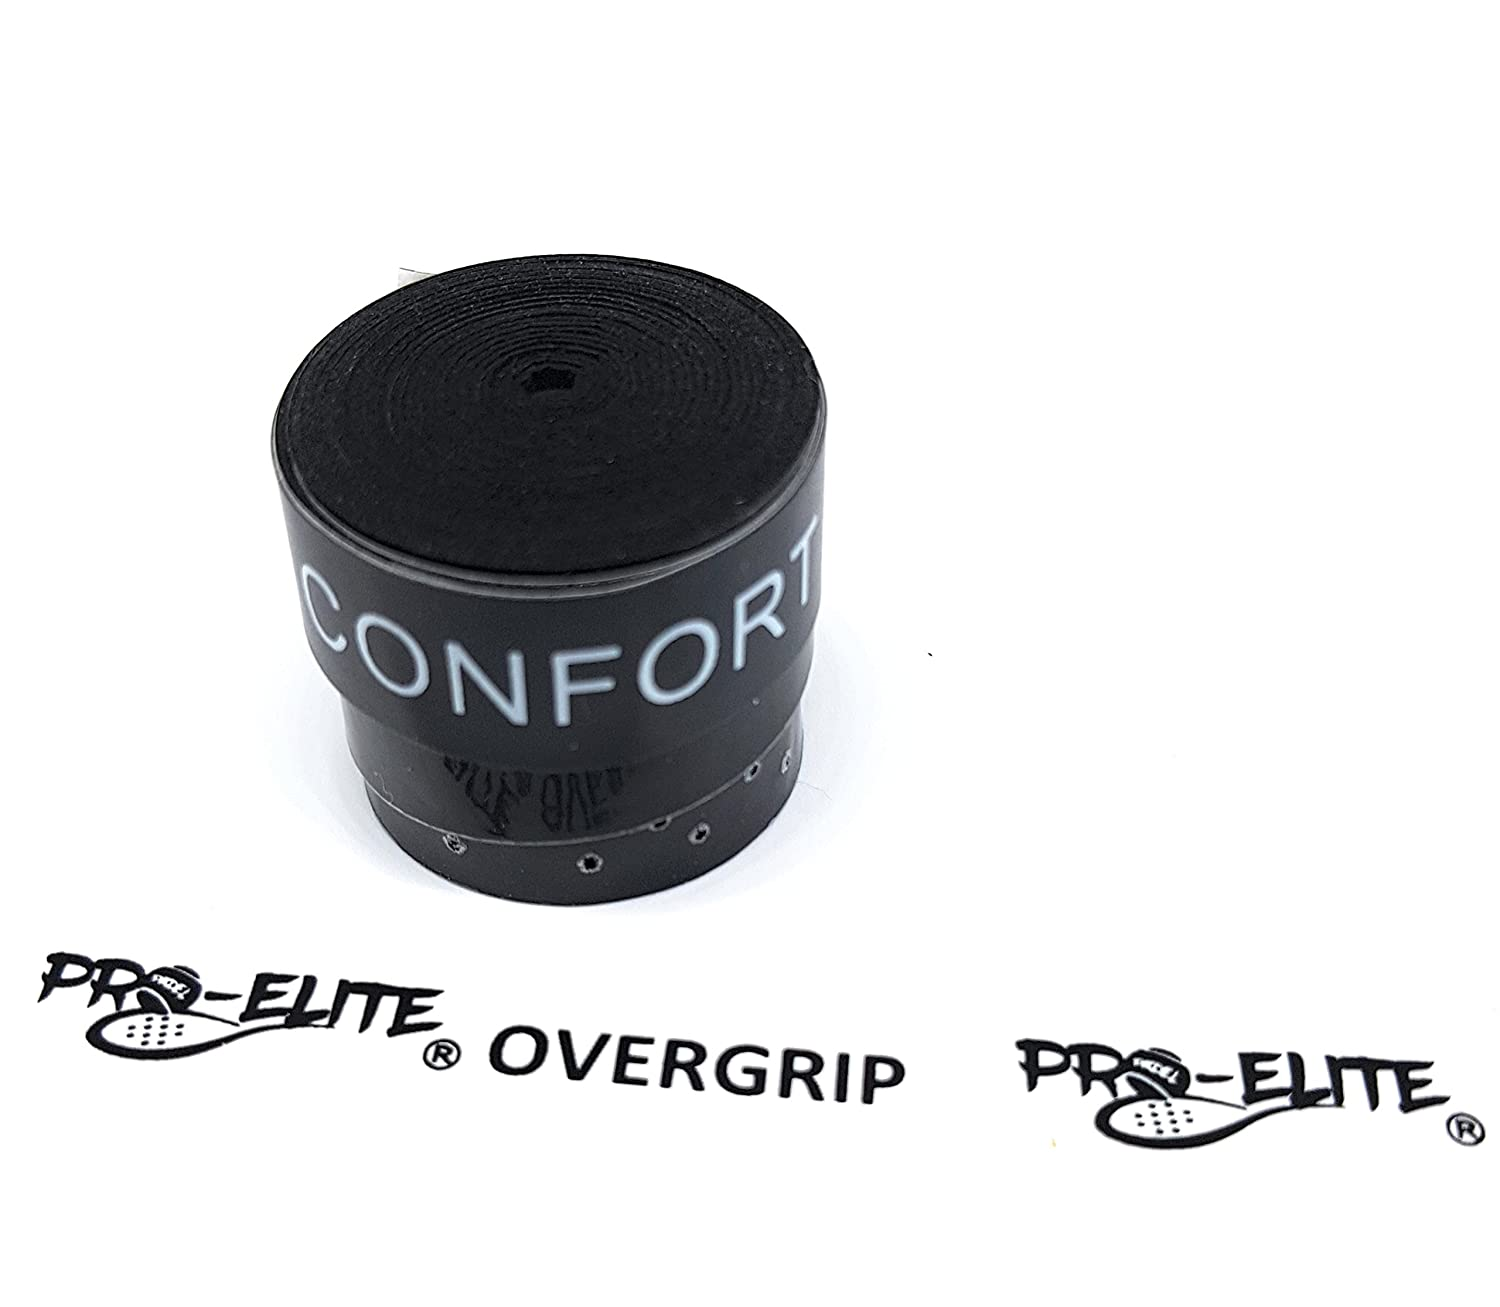 overgrip Pro Elite Confort Perforado Negro: Amazon.es ...